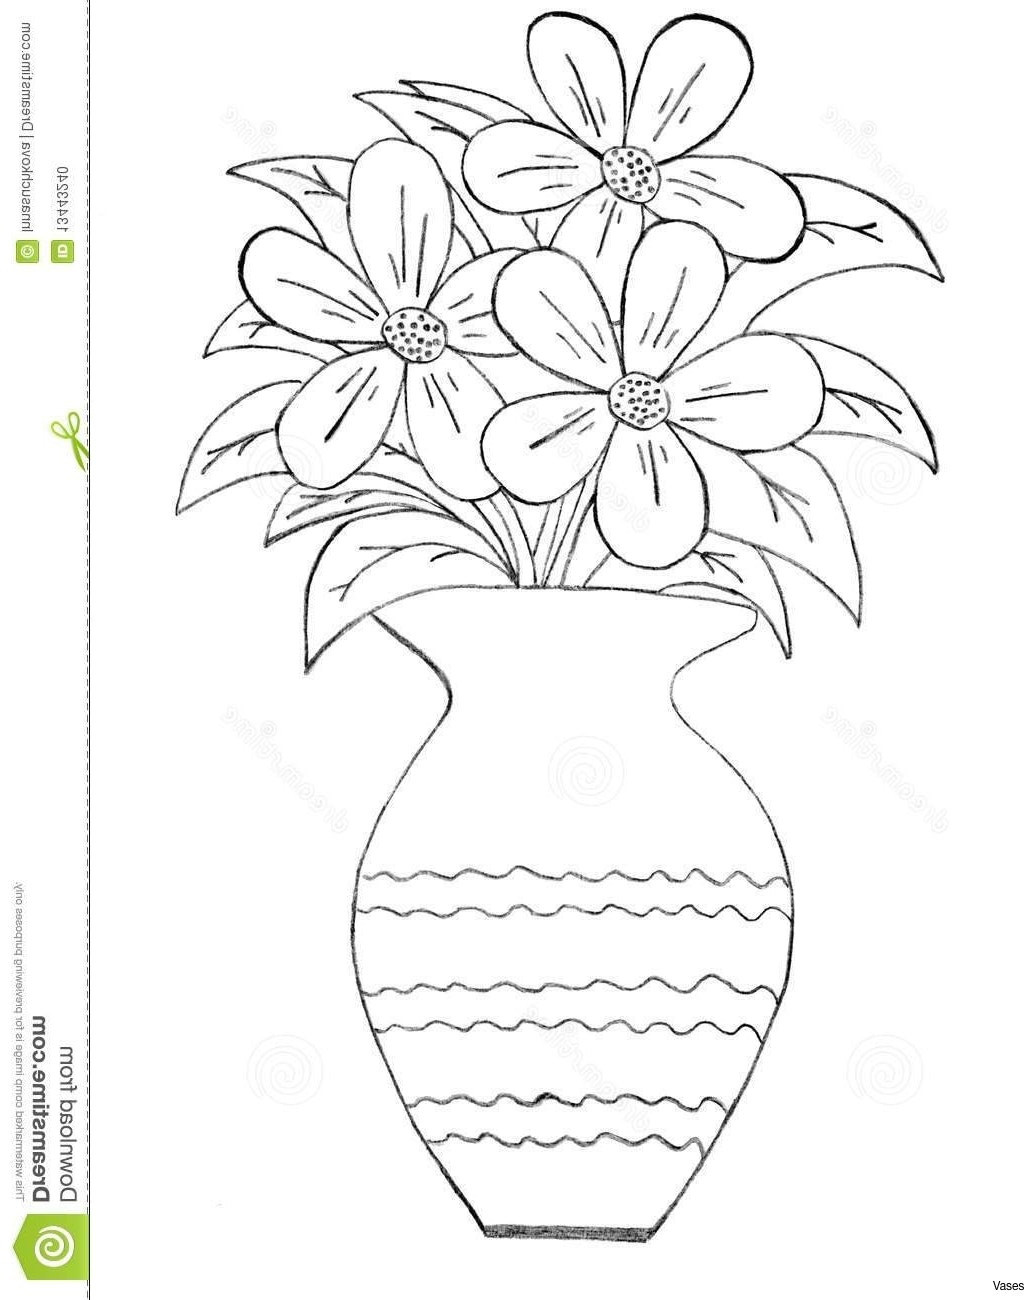 16 Cute Native American Vases 2021 free download native american vases of coloring pages of roses new vases flower vase coloring page pages in coloring pages of roses best of drawing flowers in a vase gallery vases design picture